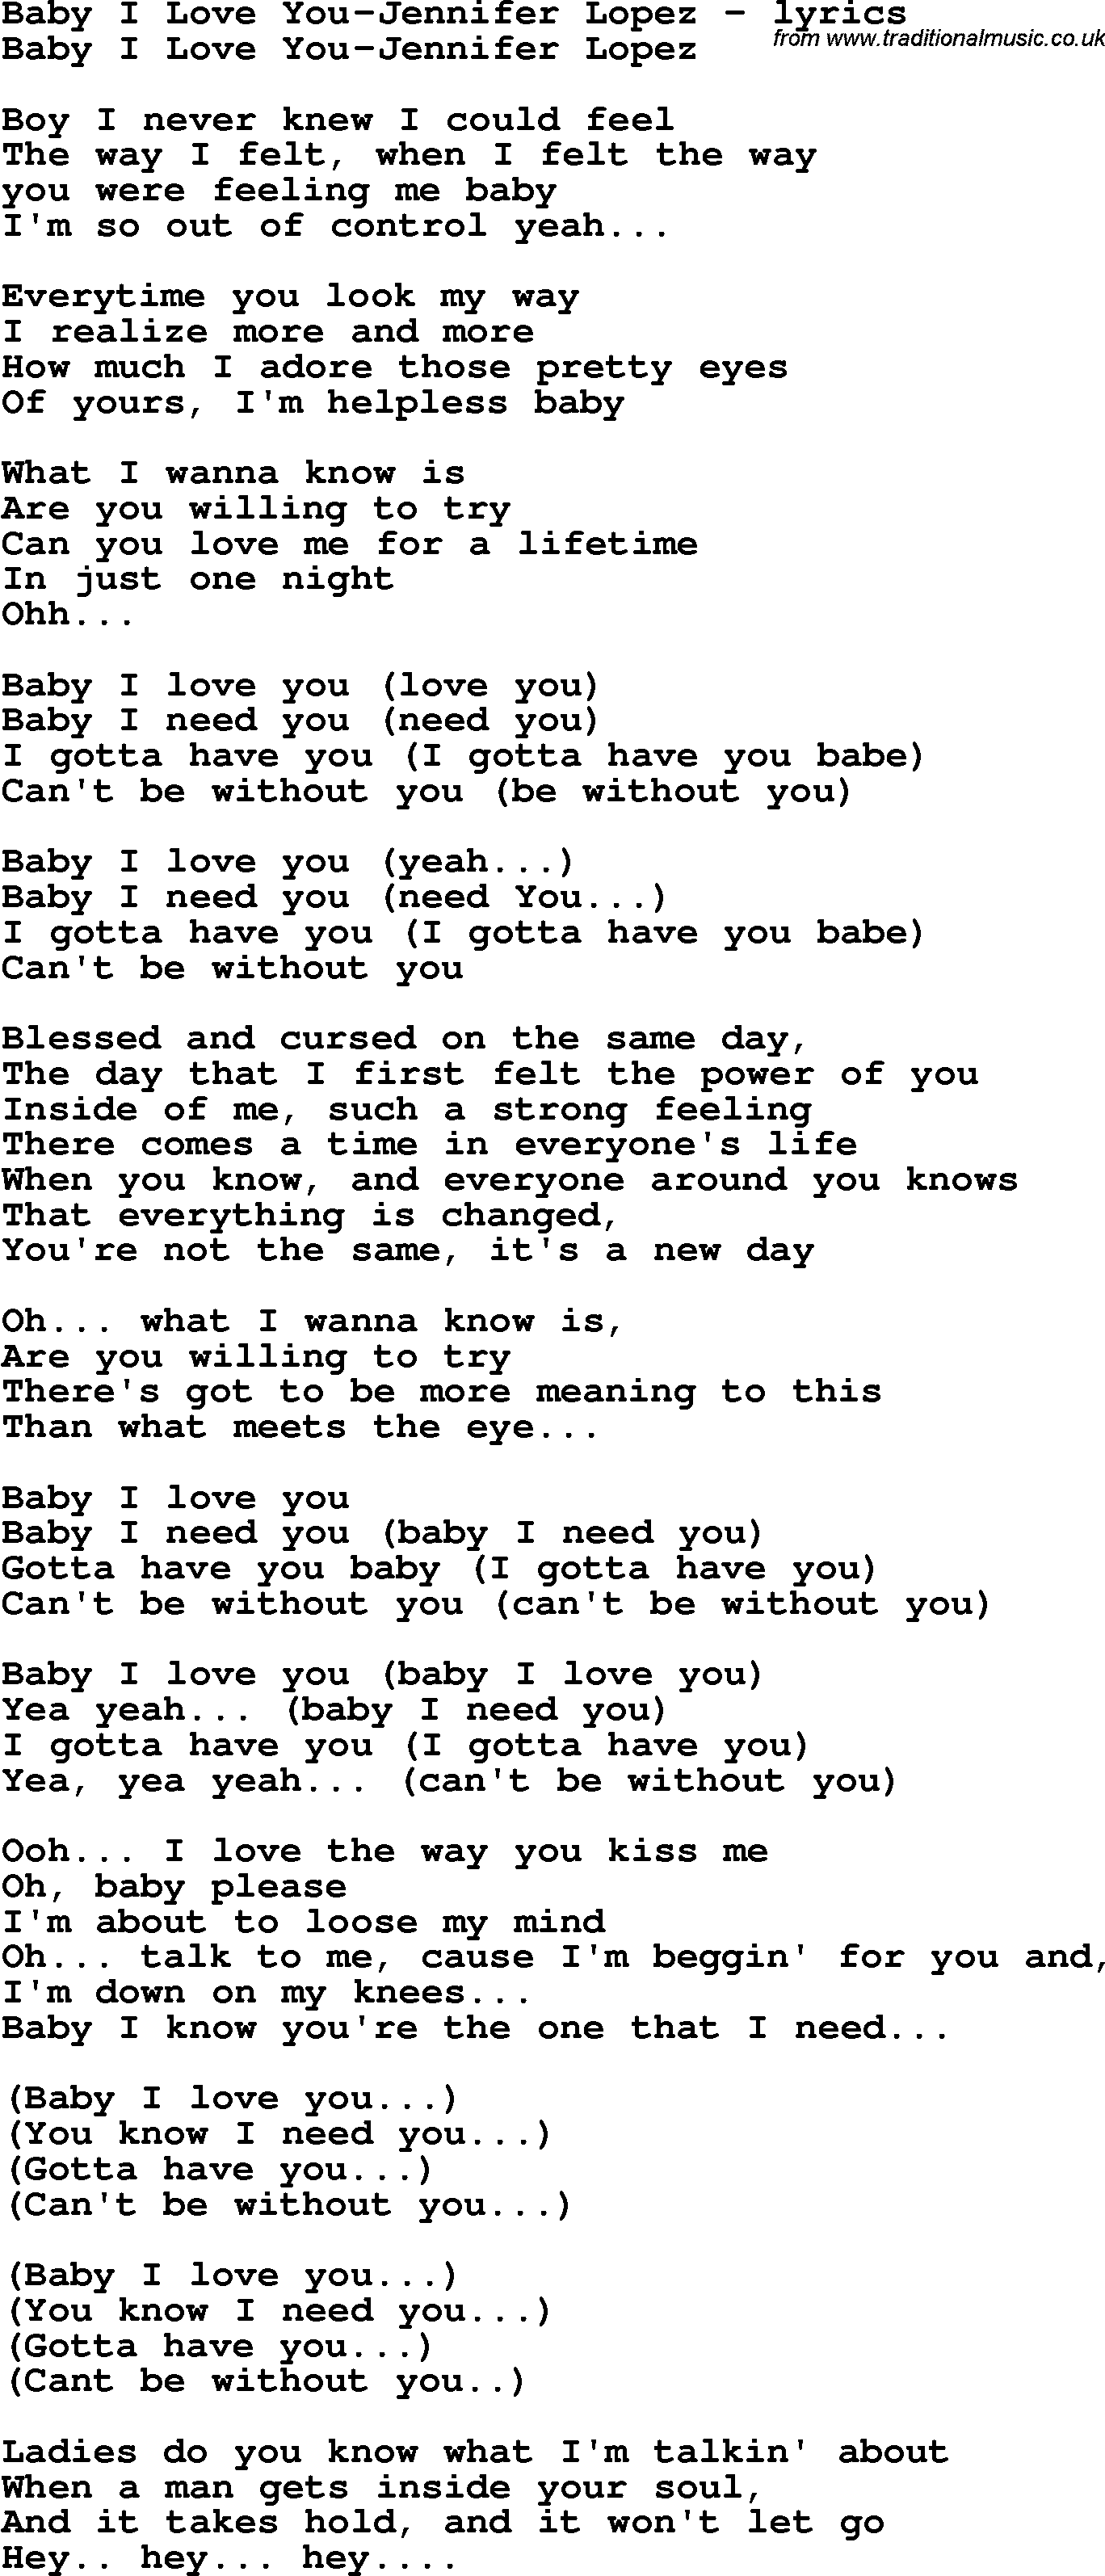 lyrics of the way i love you